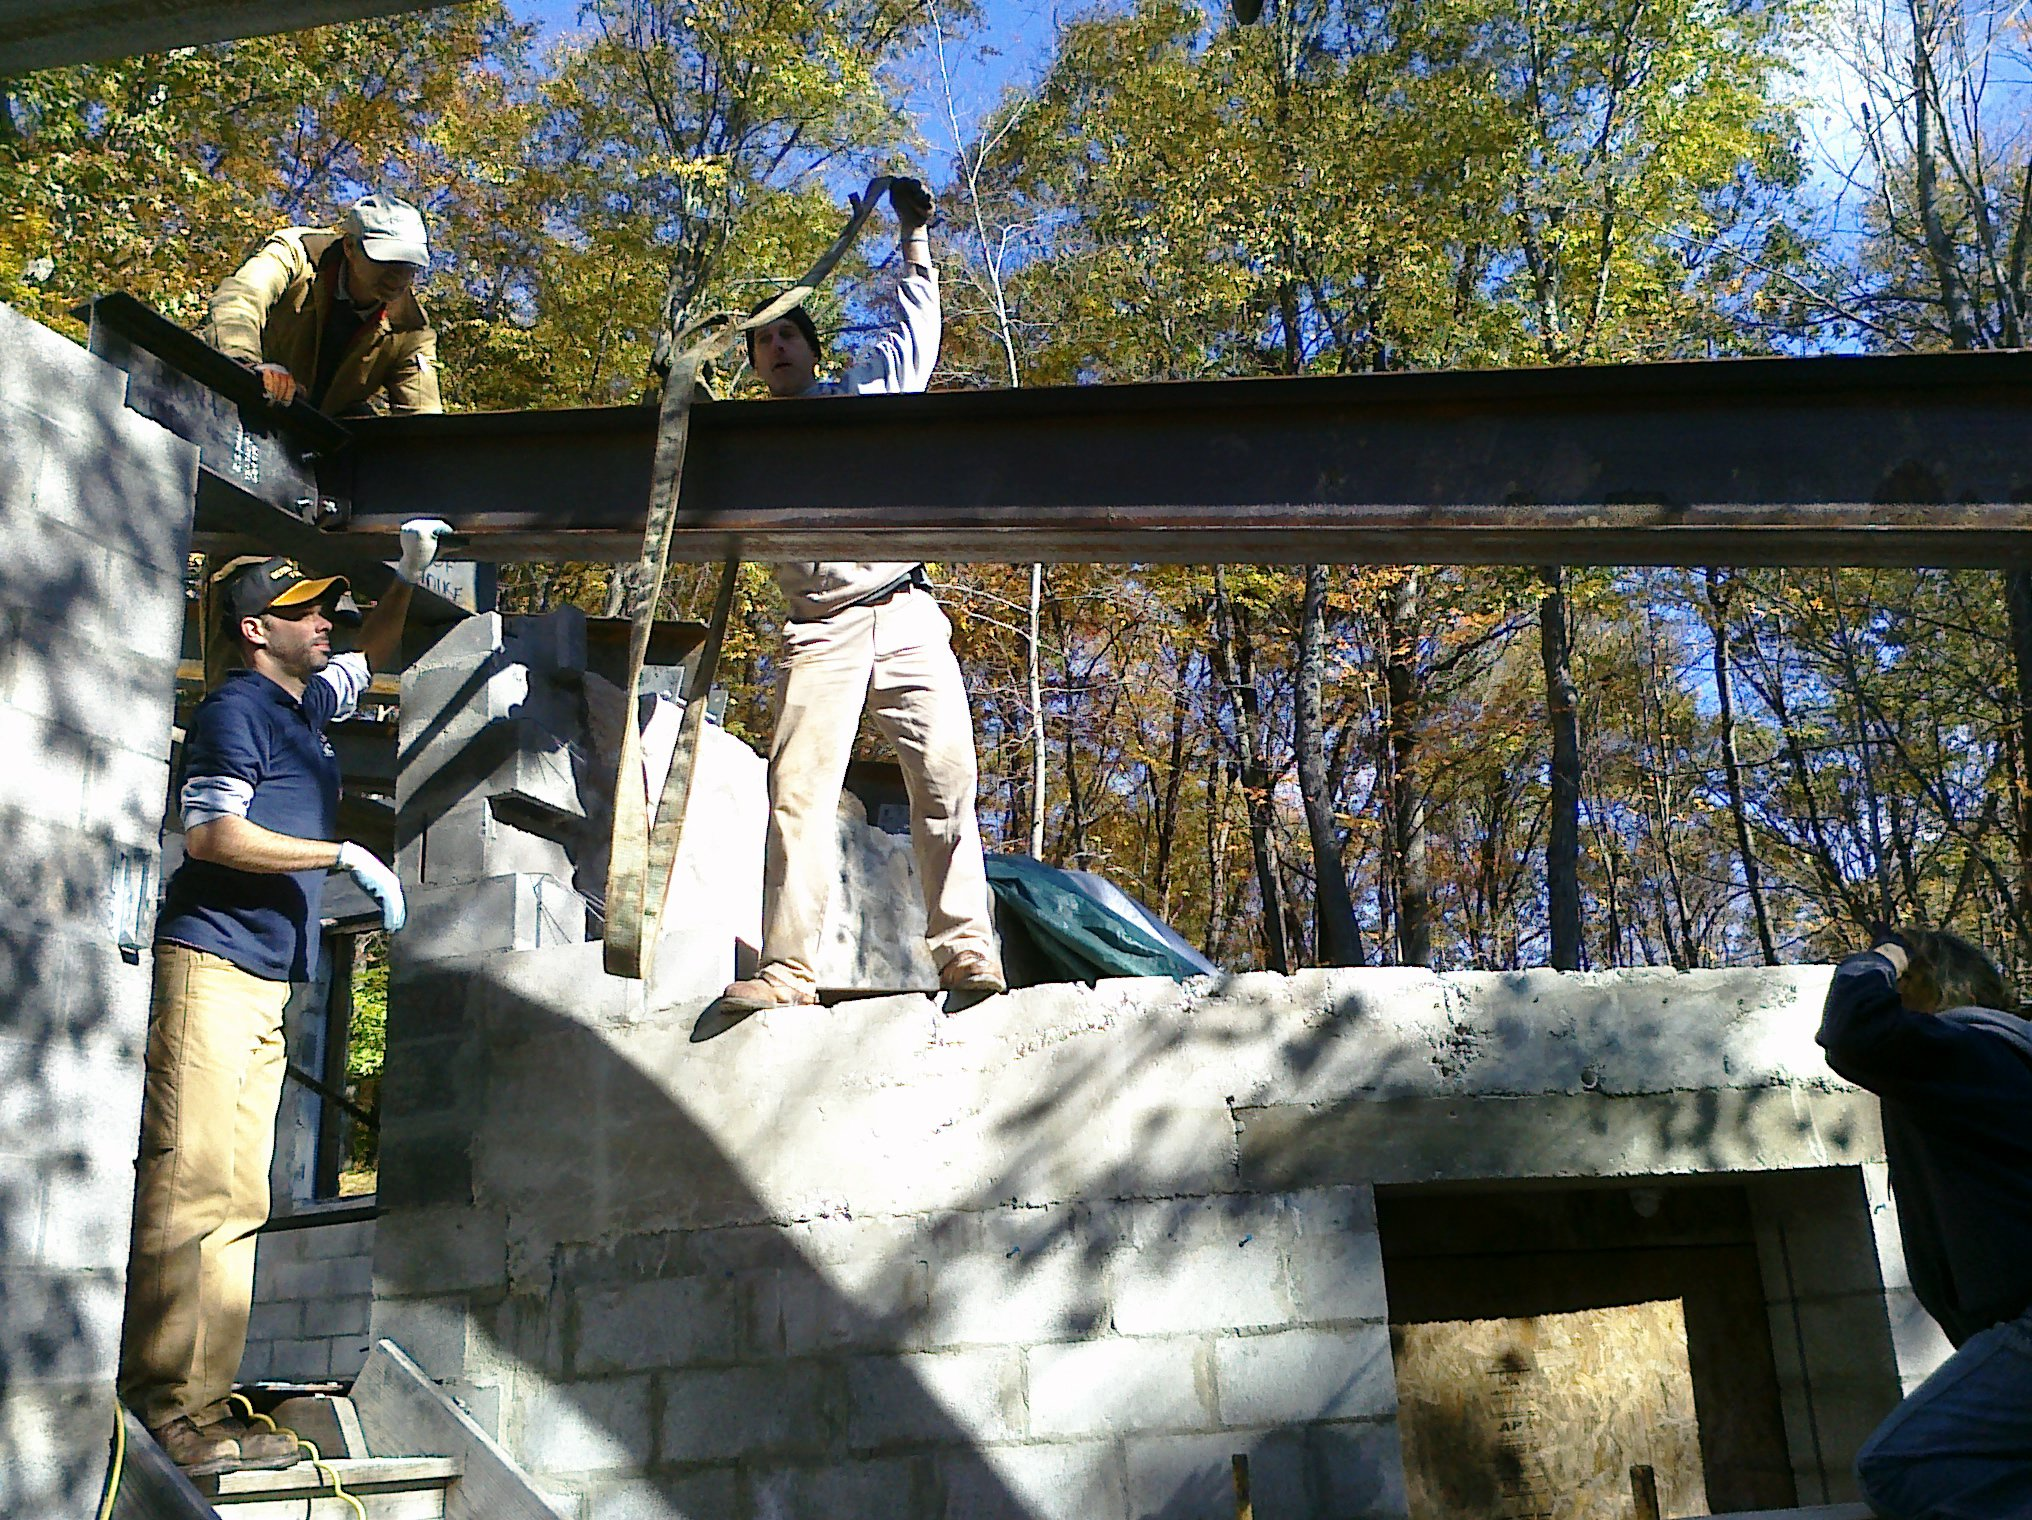 Patrick Toon, Pete Fisher, & Jim Reilly attach a roof beam to the stairway lintel.